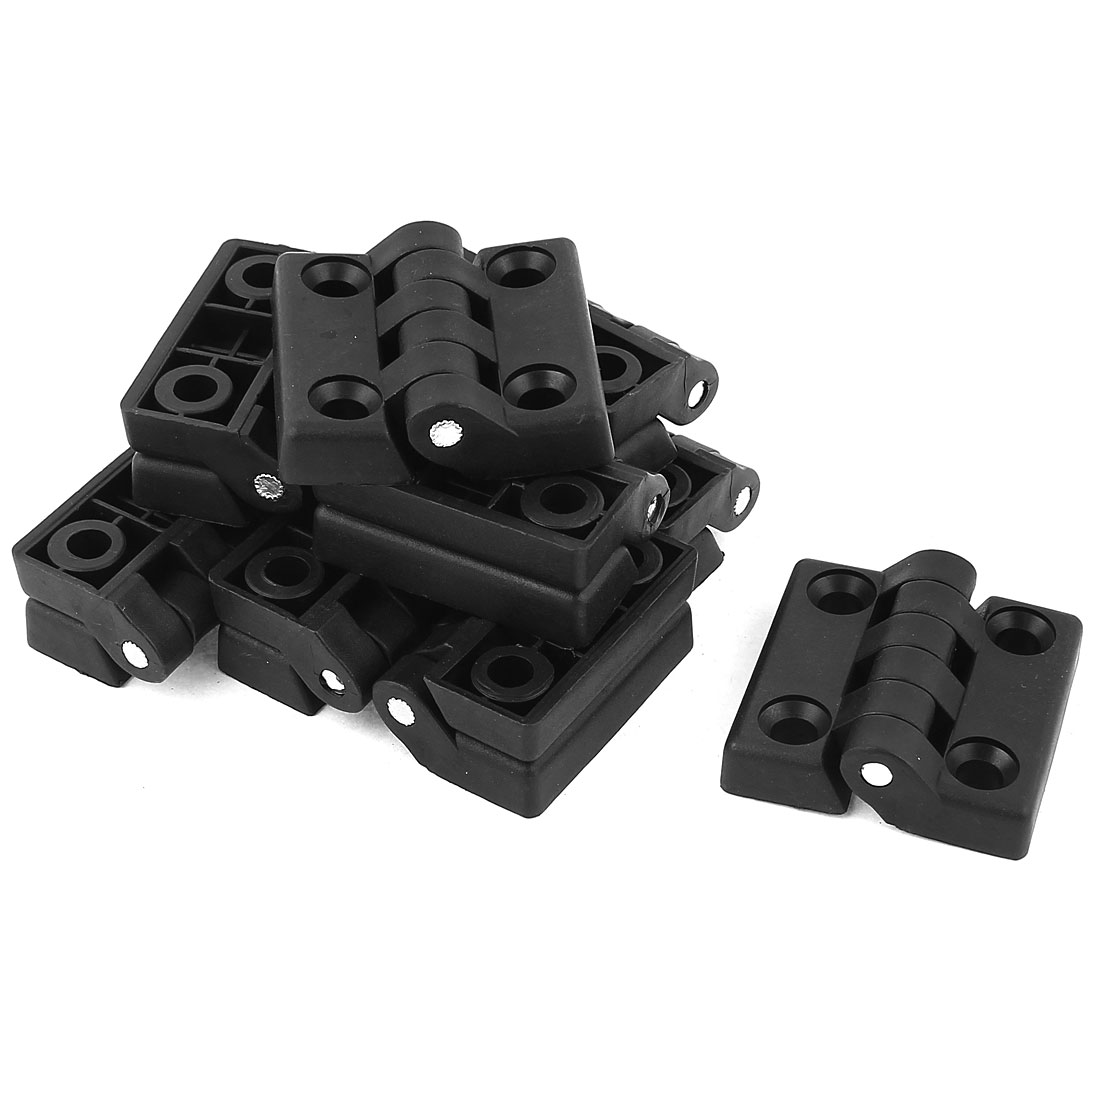 10 Pcs 6.8mm Hole Diameter 47 x 47mm Foldable Black Nylon Hinge